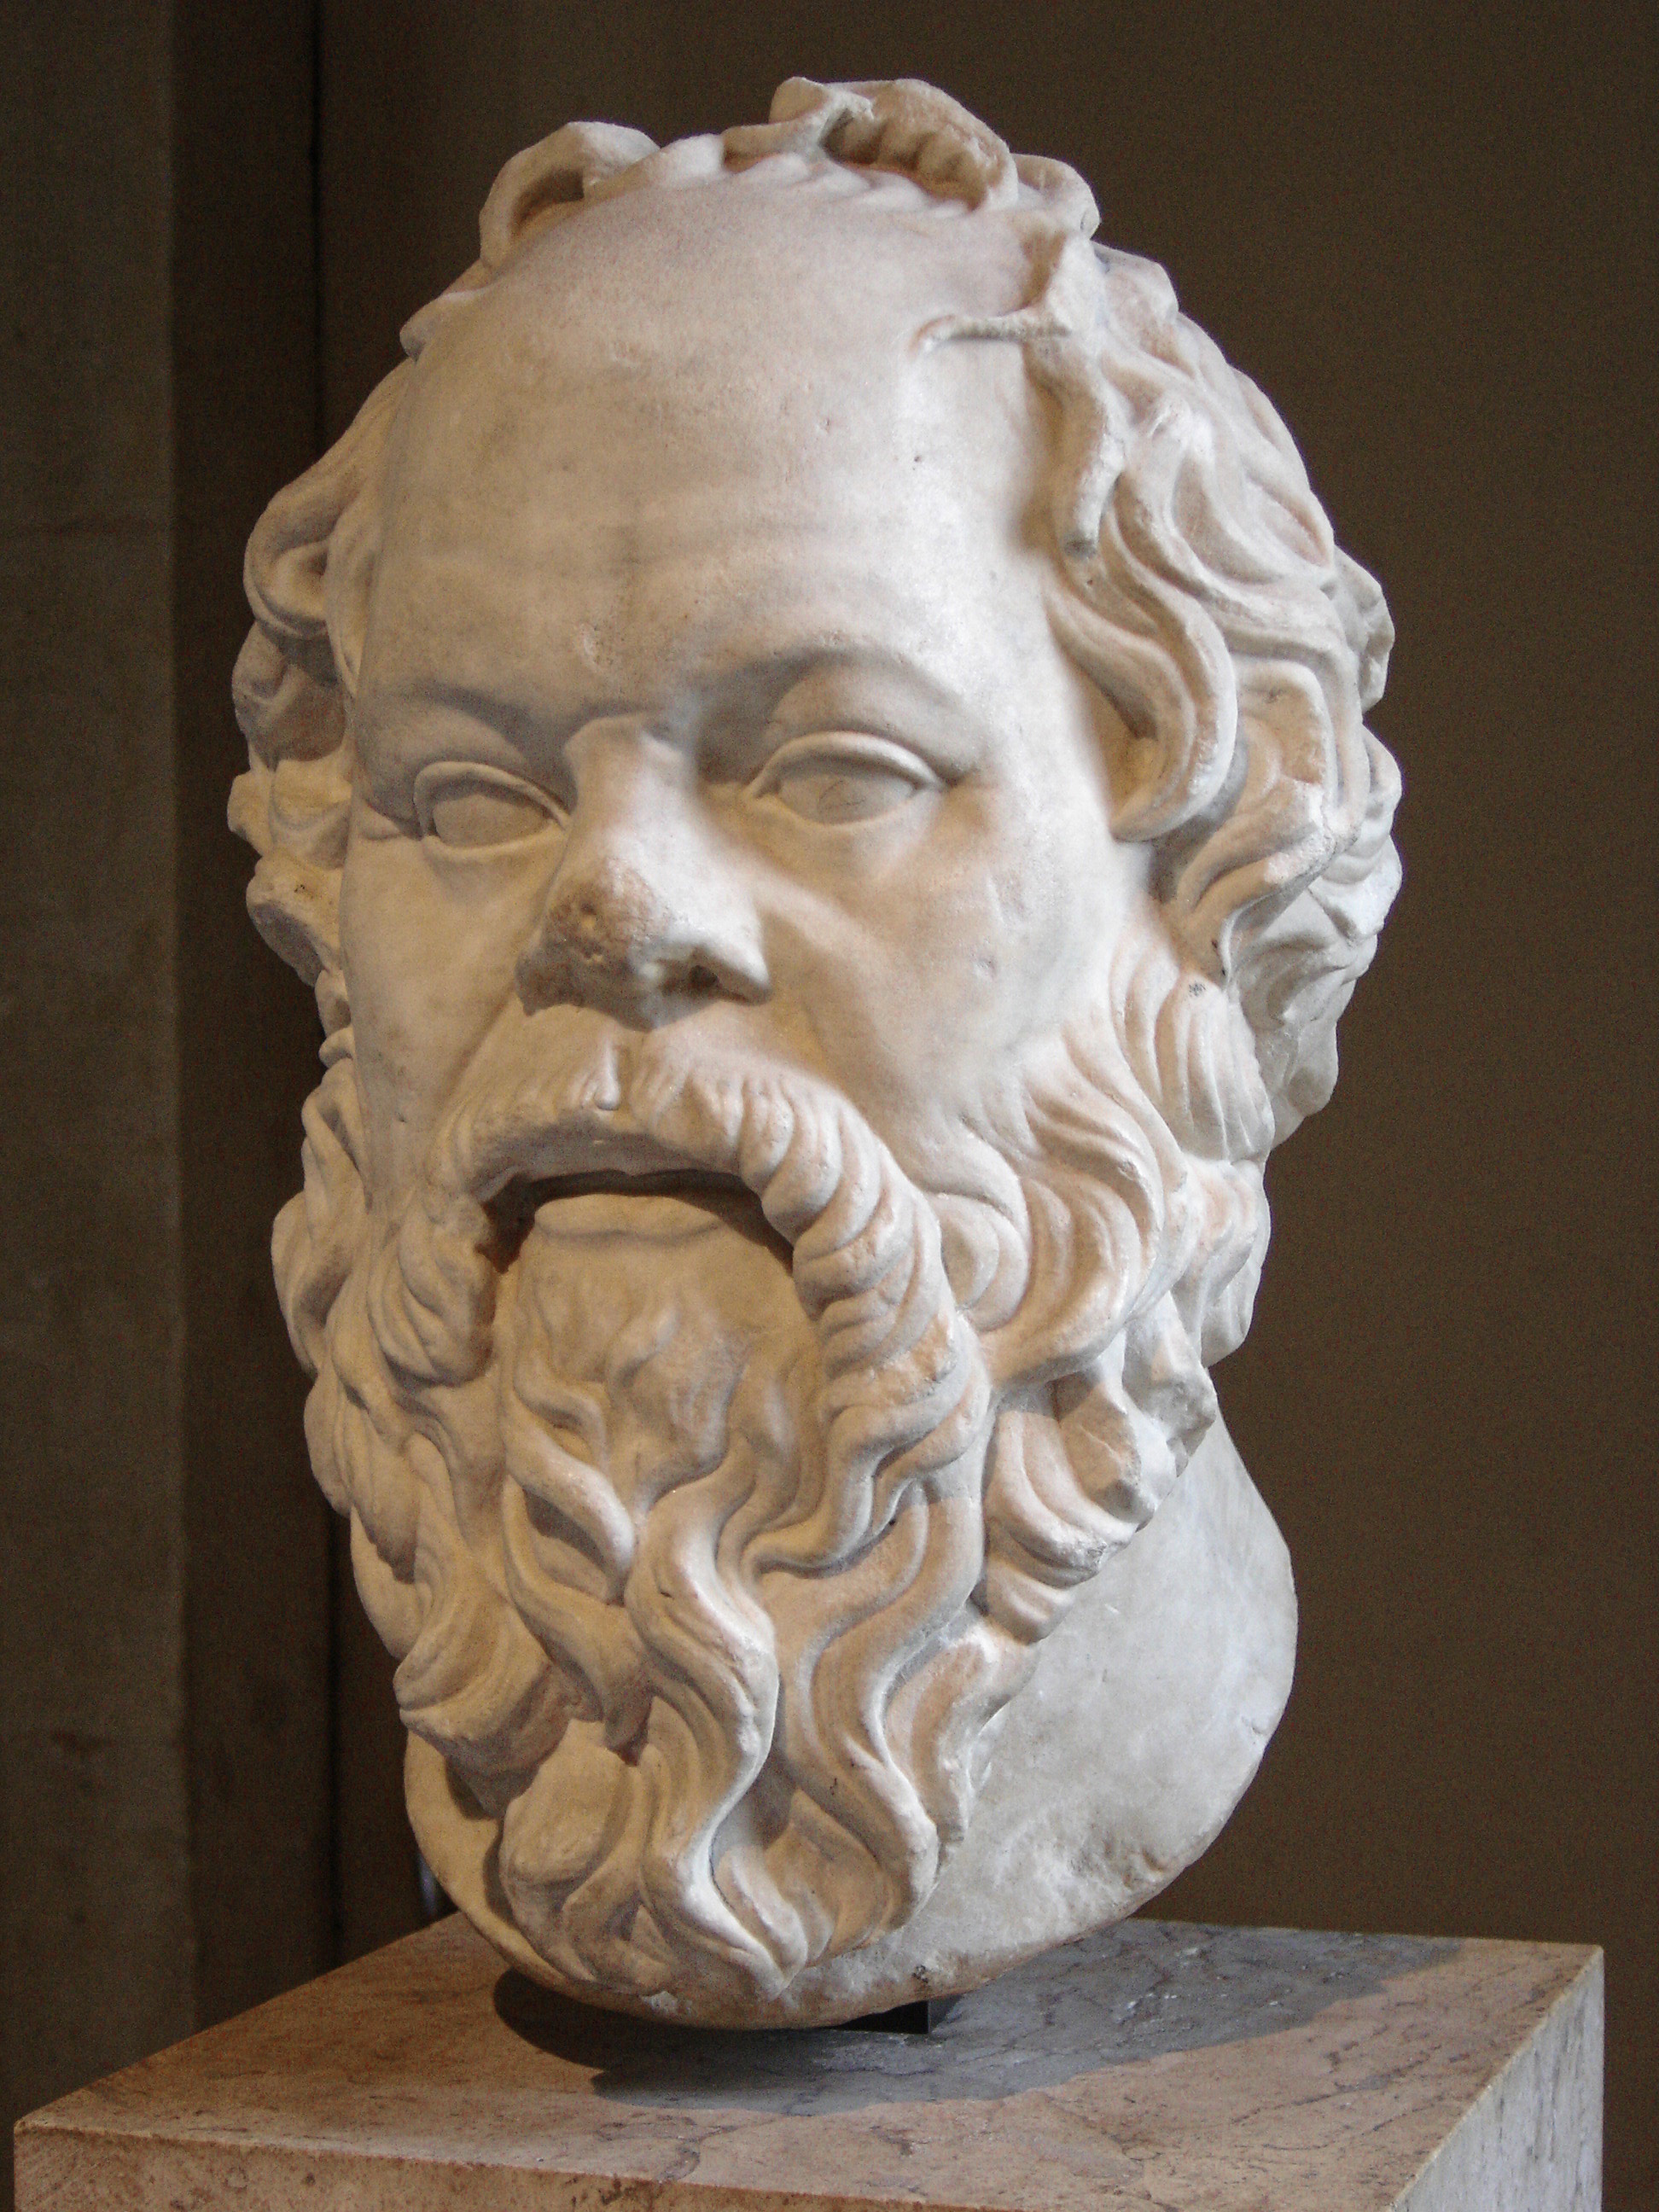 Portrait of Socrates. Marble, Roman artwork (1st century).